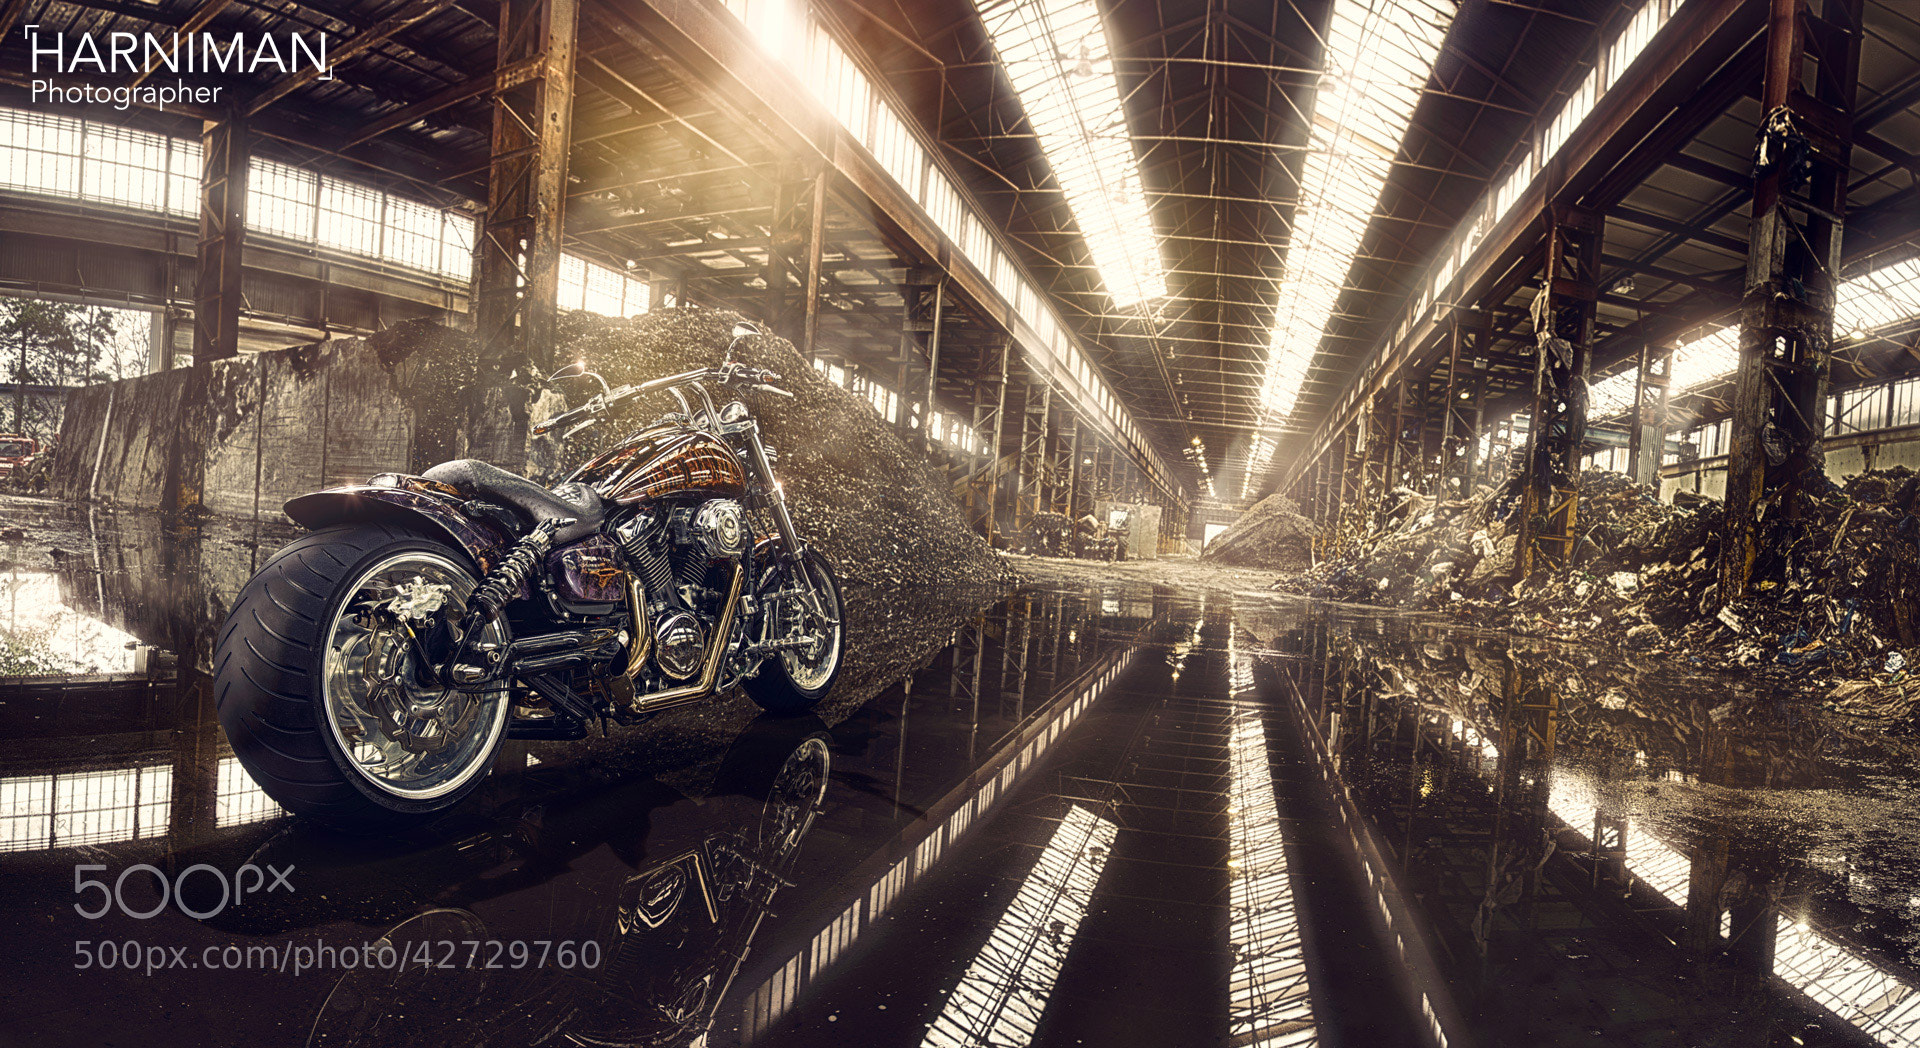 Photograph Demented, the custom Kawasaki by Nigel Harniman on 500px